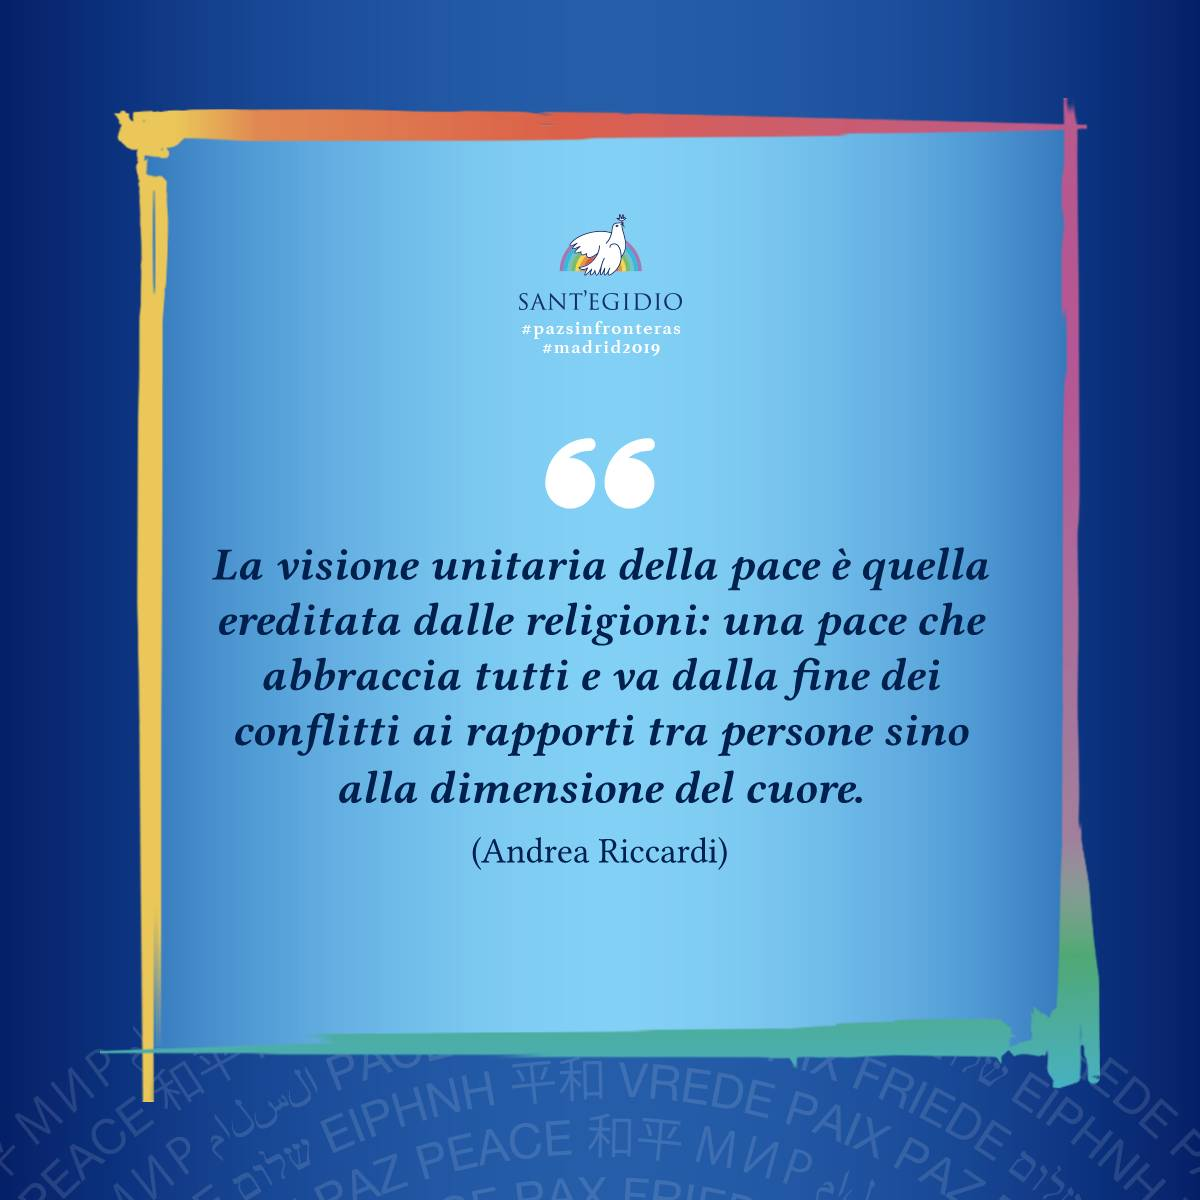 Intervention d'Andrea Riccardi